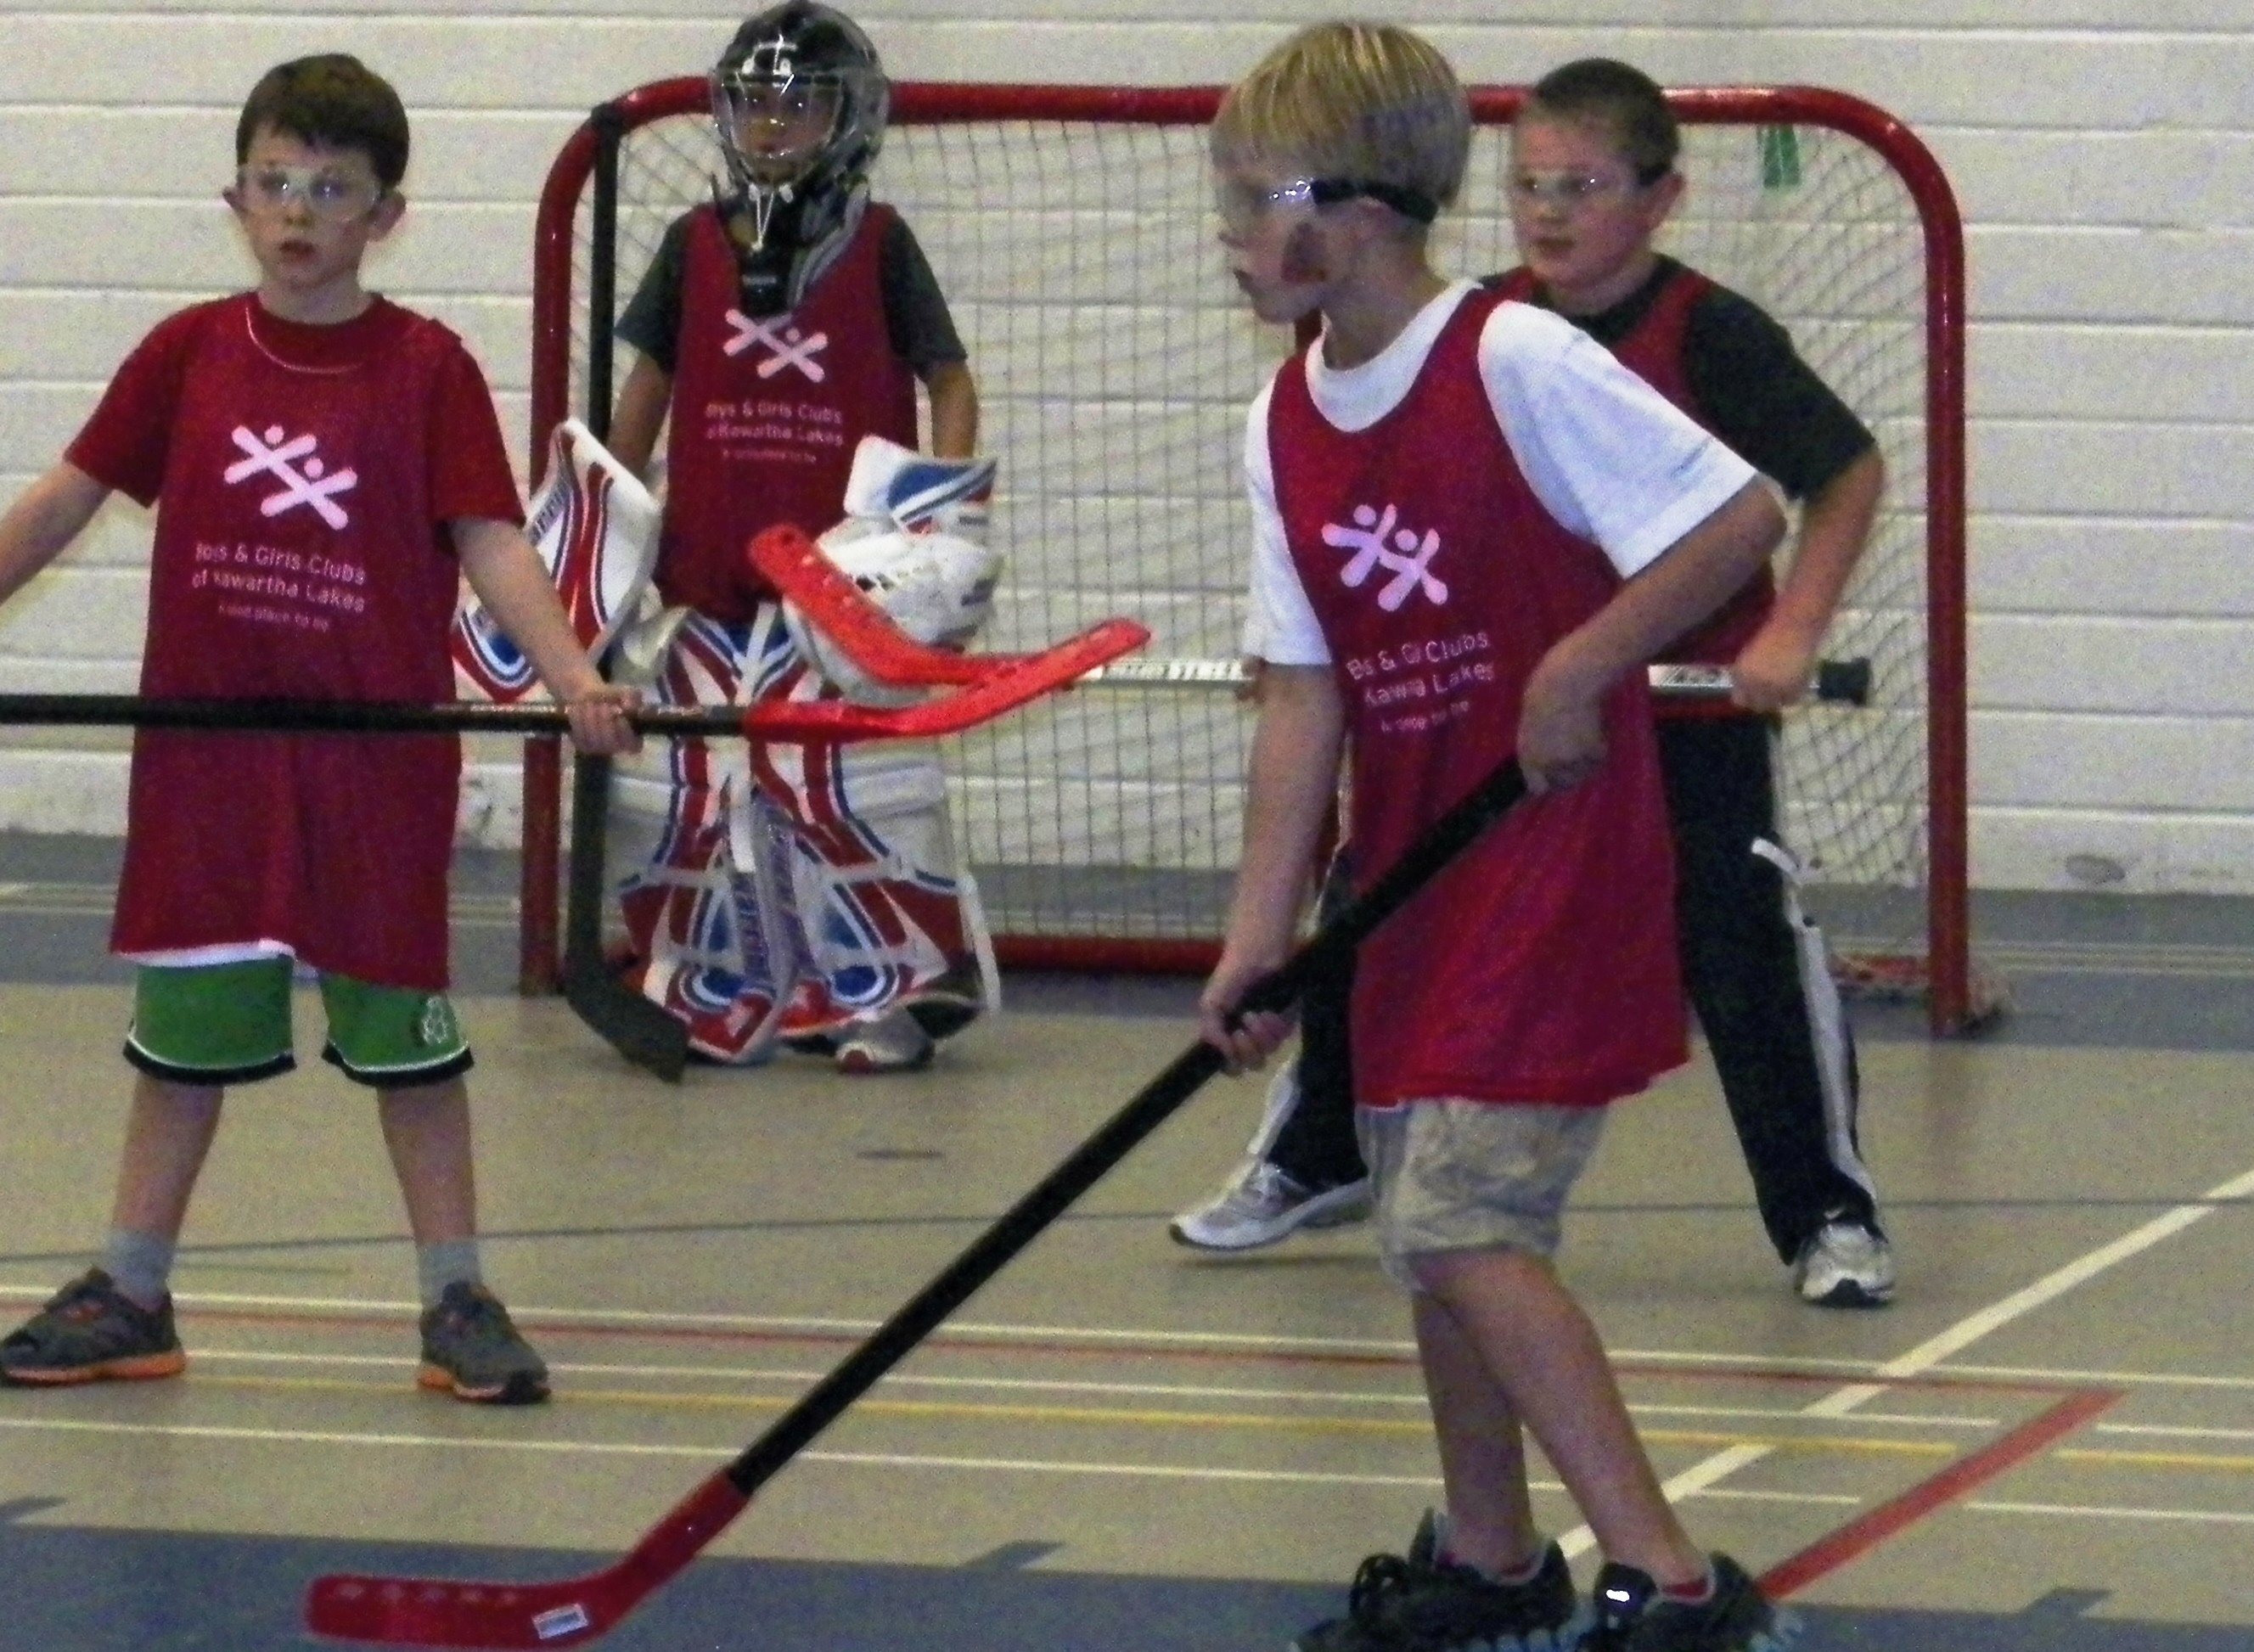 Ball%20hockey%20approved%203%202012